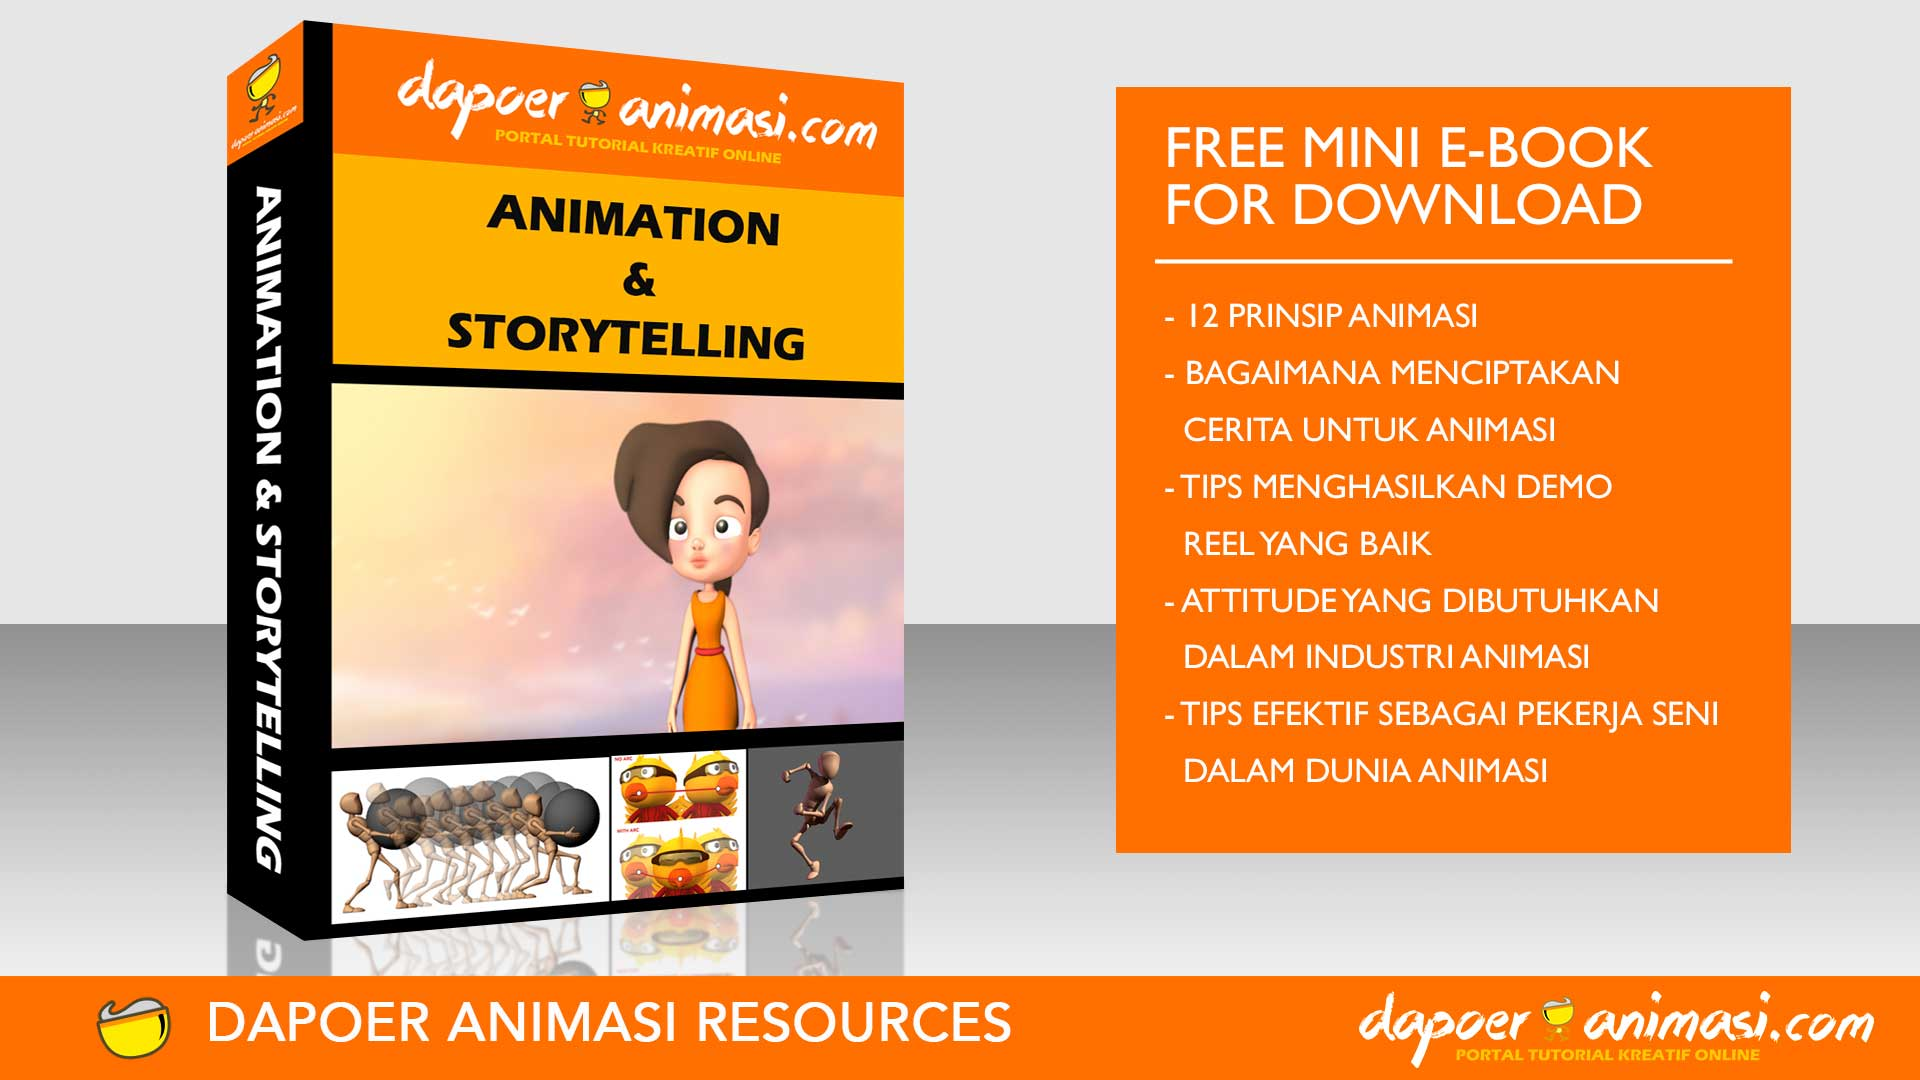 Dapoer Animasi : Free Mini E-book for Download : Animation & Storytelling E-Book